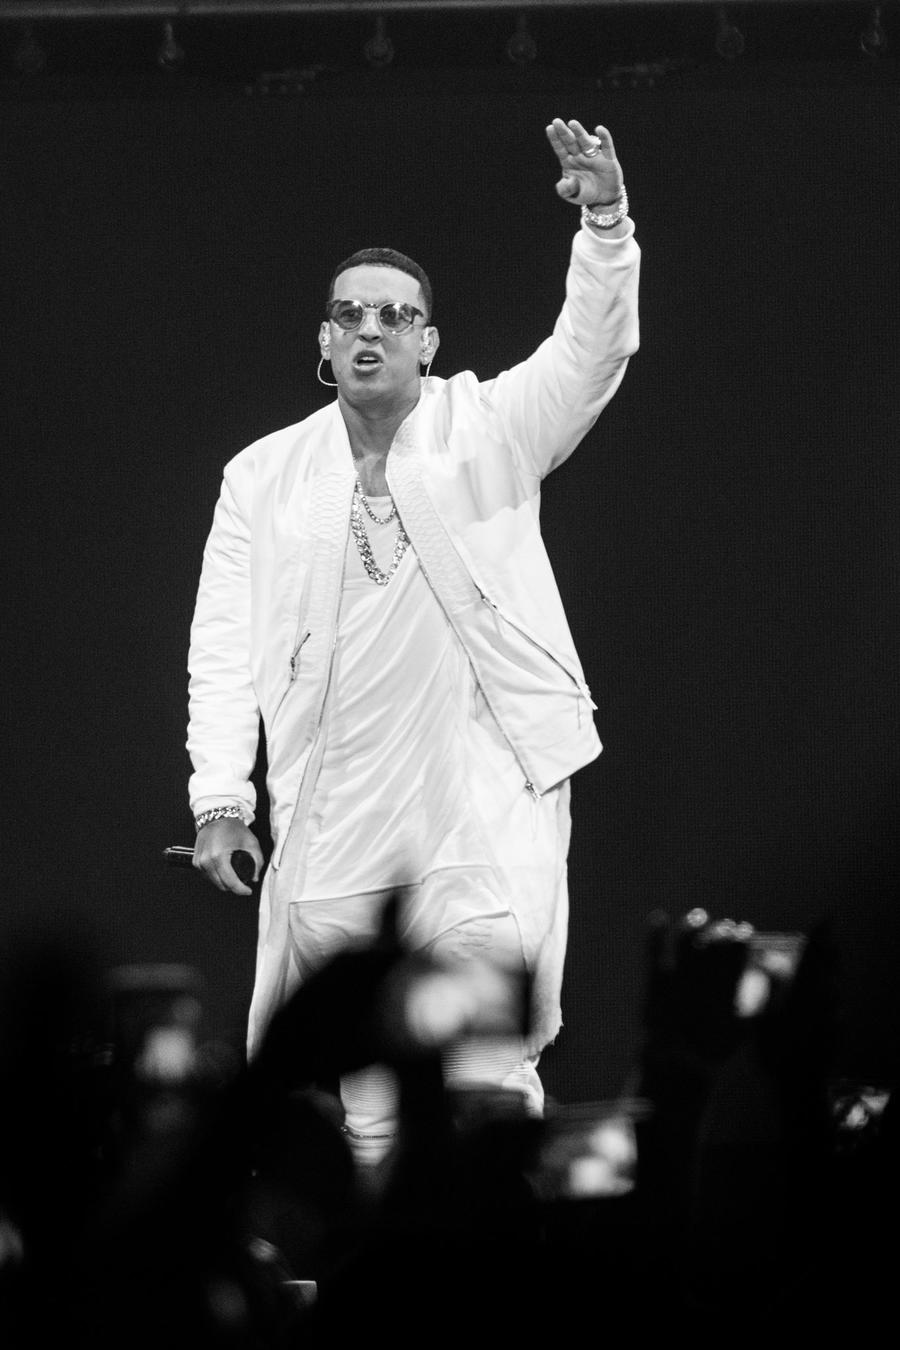 Daddy Yankee y Don Omar - Kingdom Tour American Airlines Arena Miami 2016